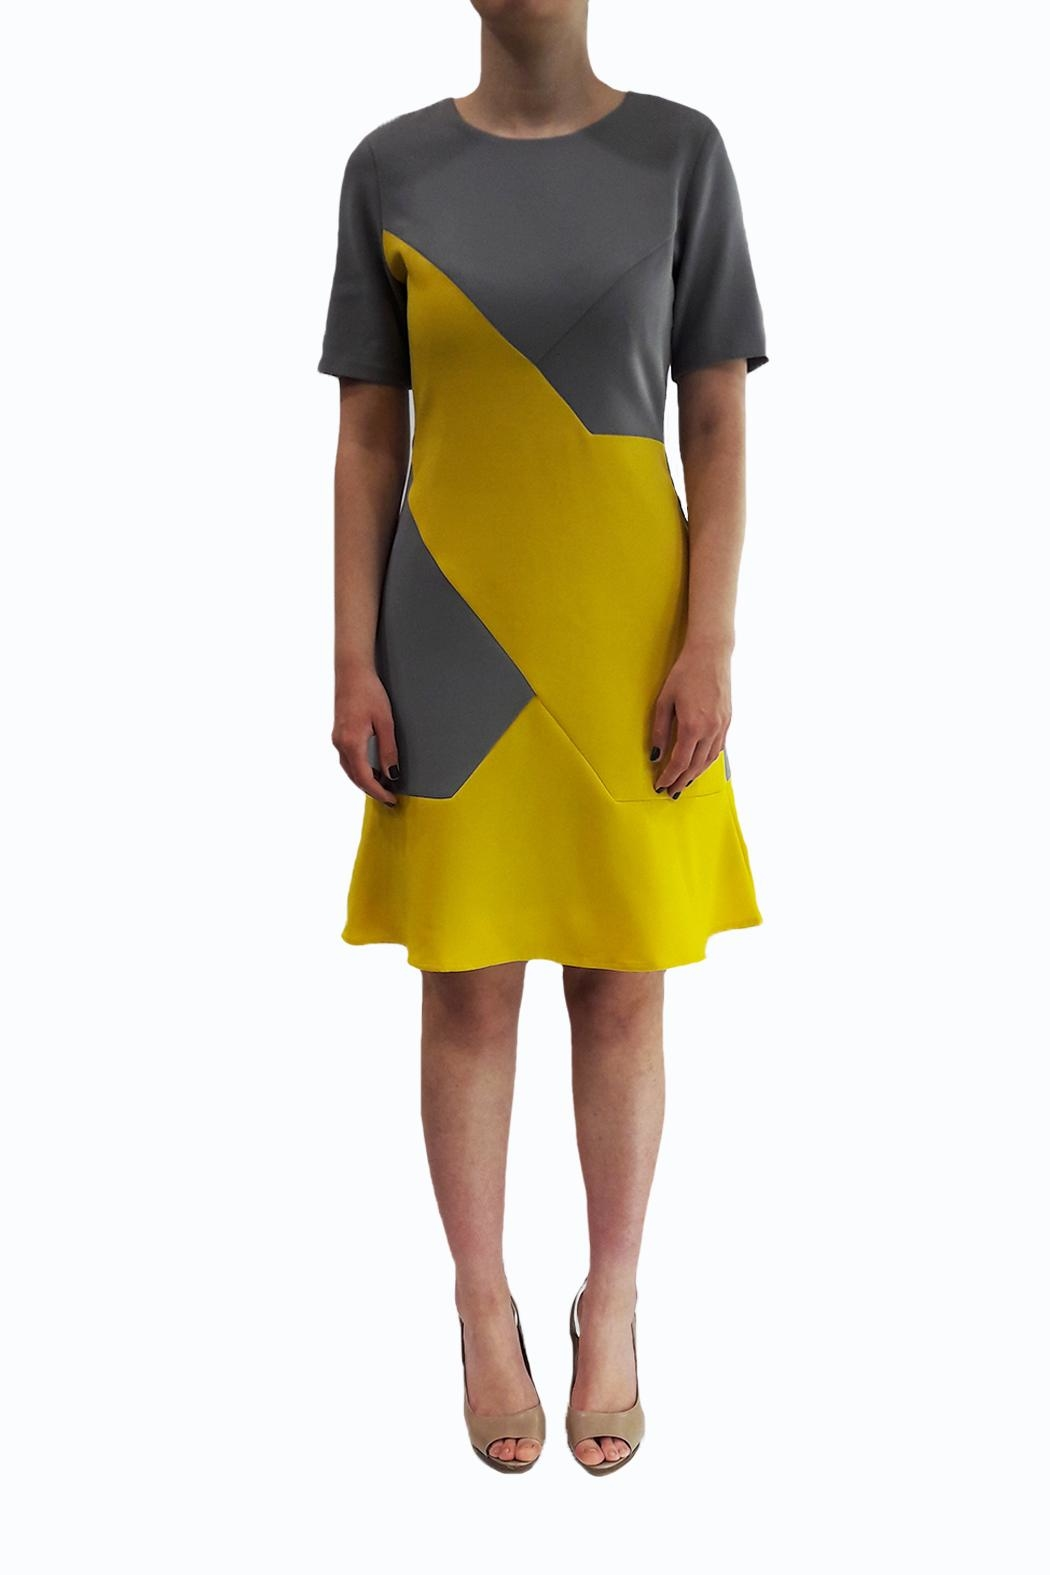 Emily lovelock Geometric Dress - Main Image